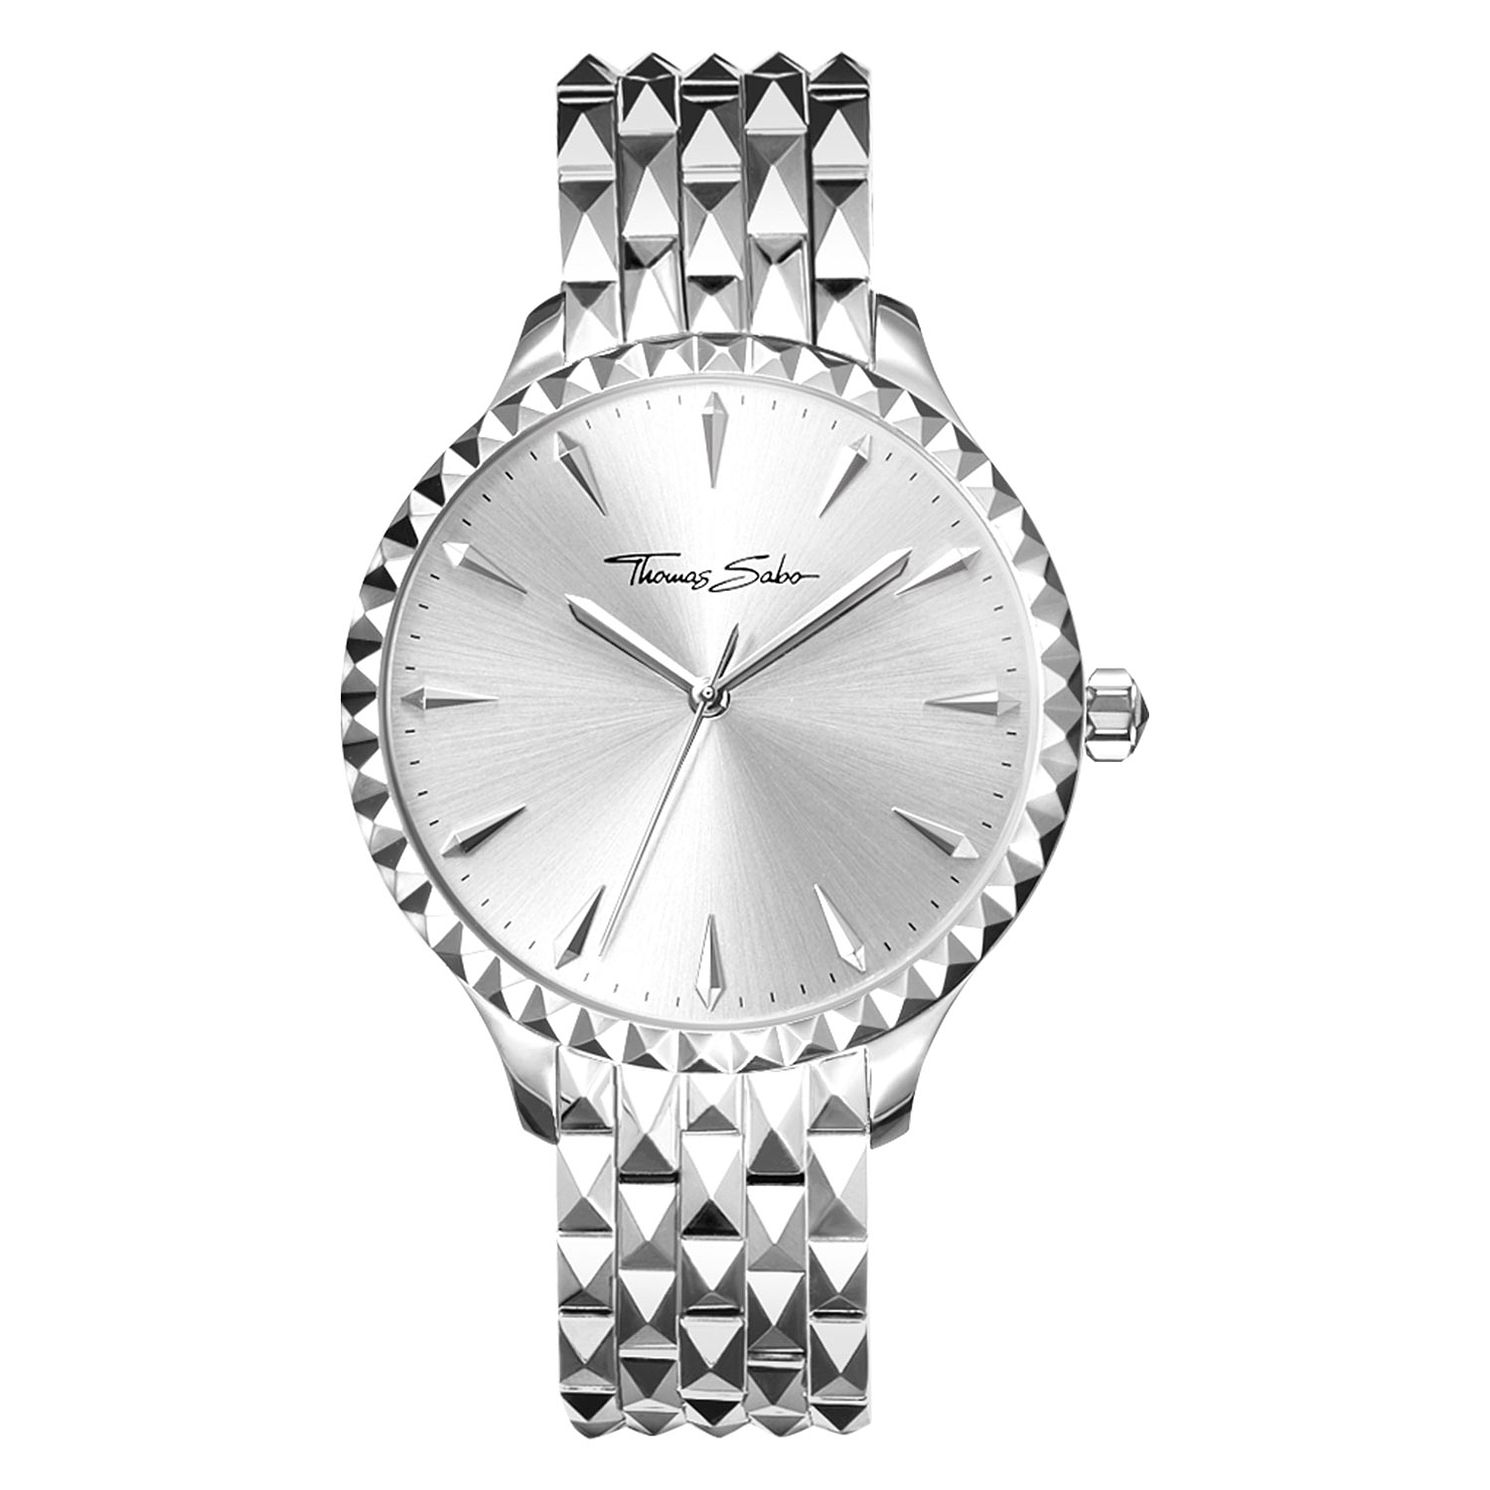 Thomas Sabo Rebel Stud Ladies Stainless Steel Bracelet Watch - Product number 4469135